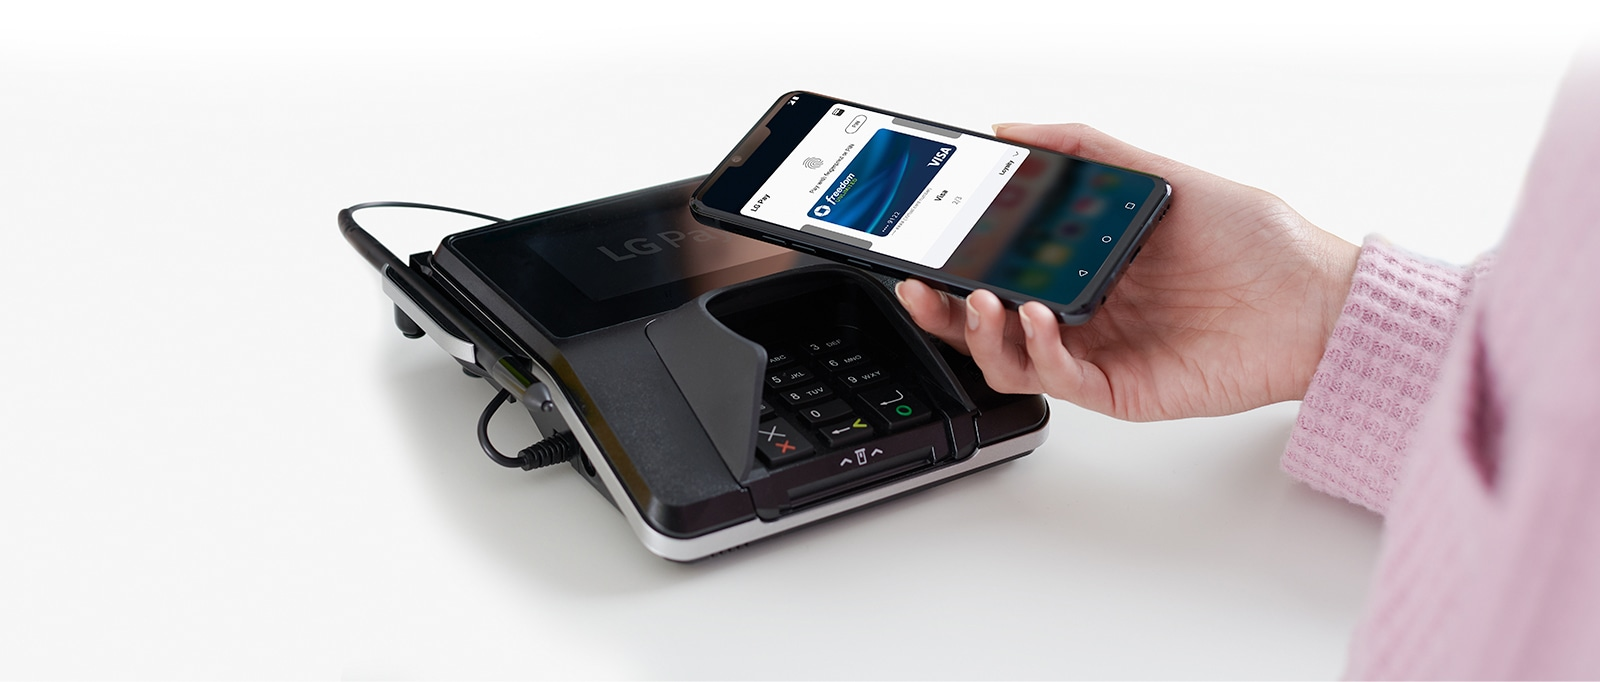 Image of someone using LG Pay.